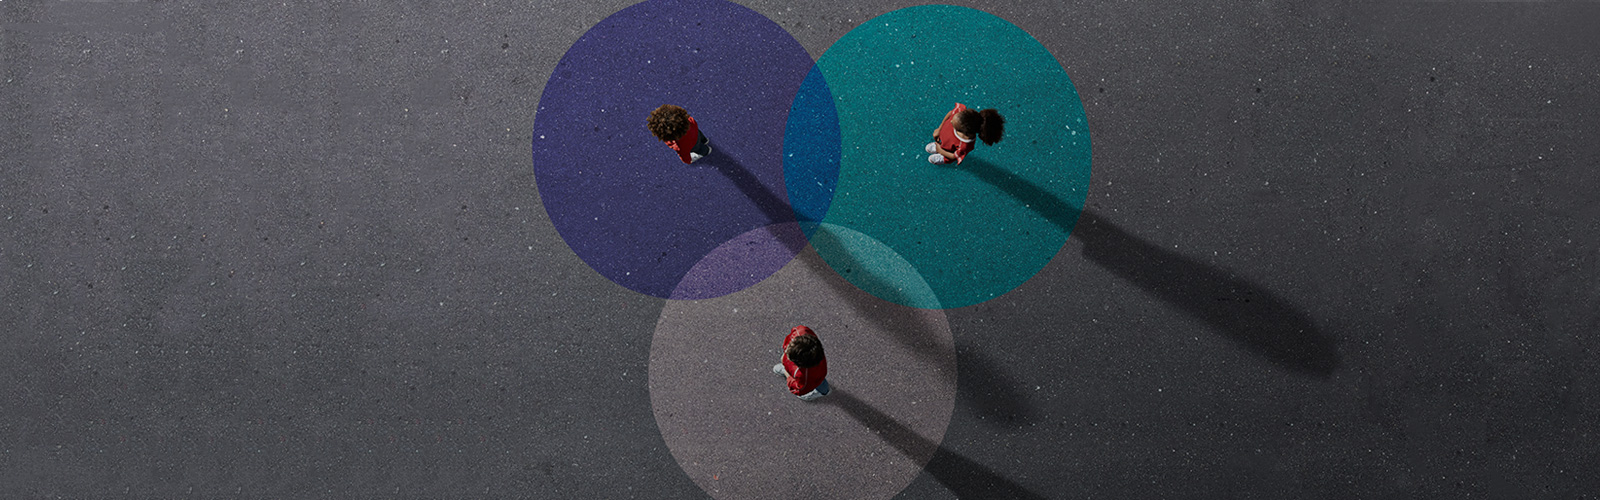 aerial view of 3 people standing in coloured circles on the ground